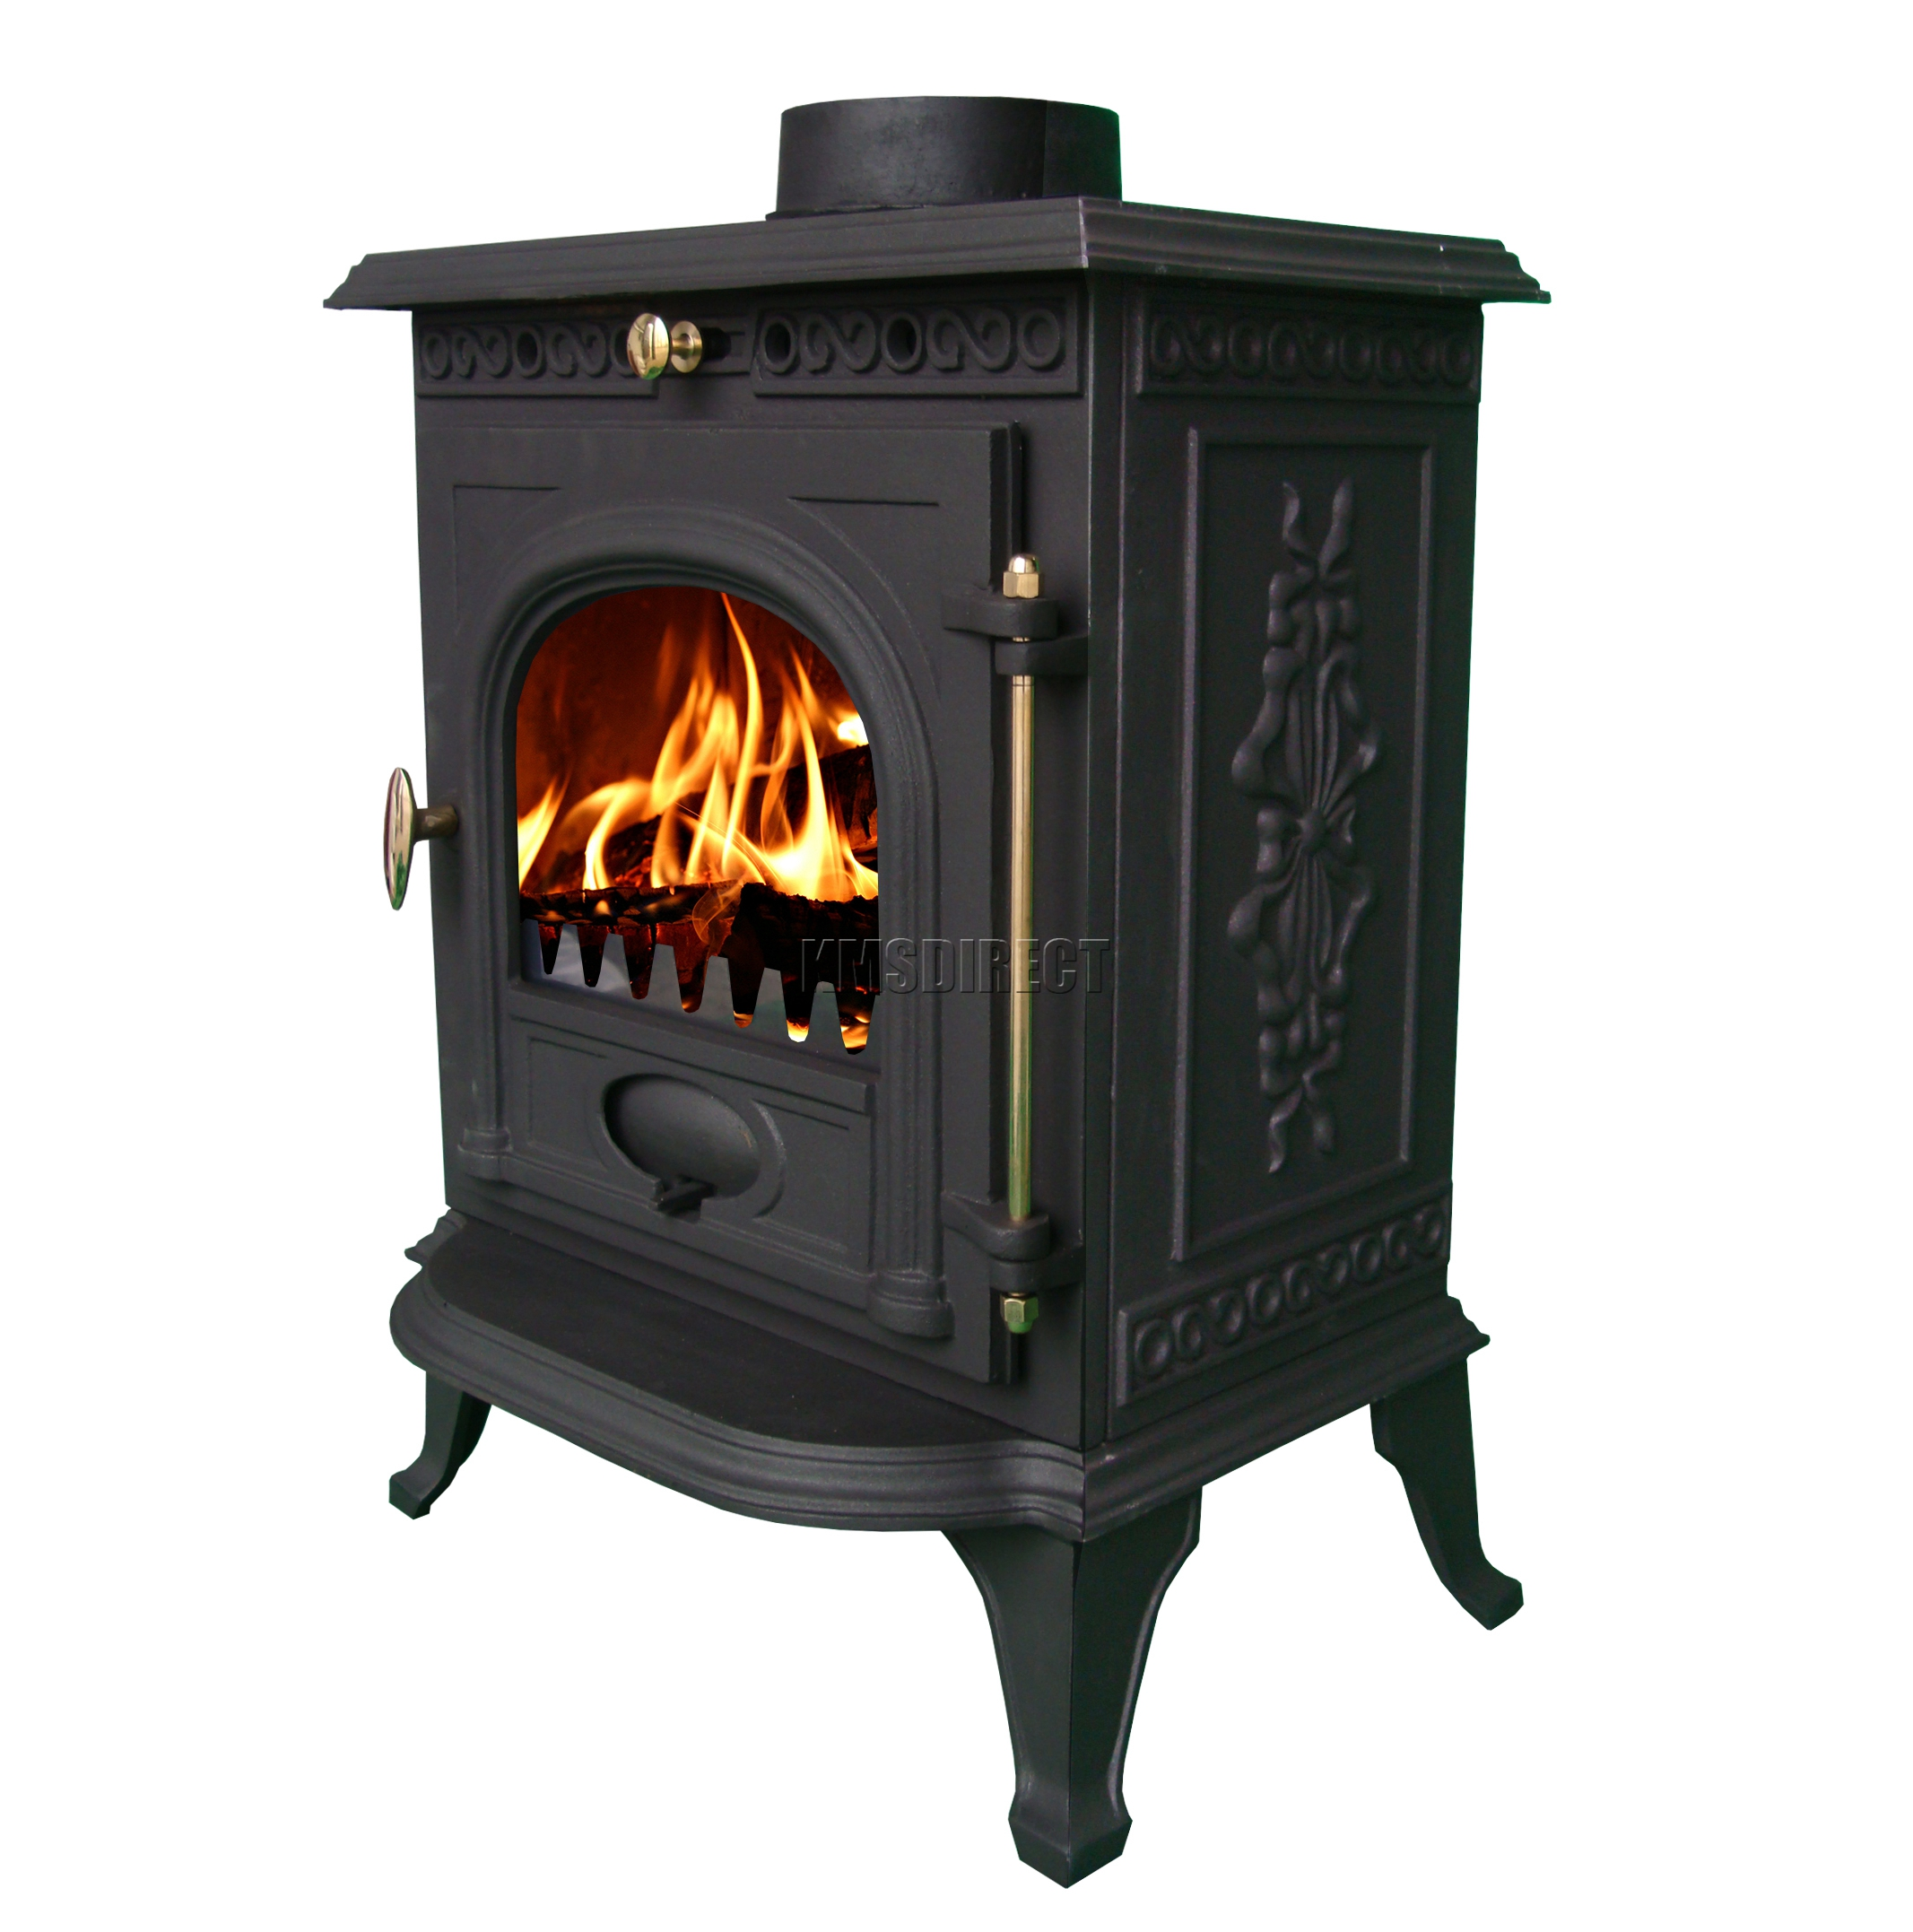 Woodburner New Cast Iron Log Burner Multifuel Wood Burning